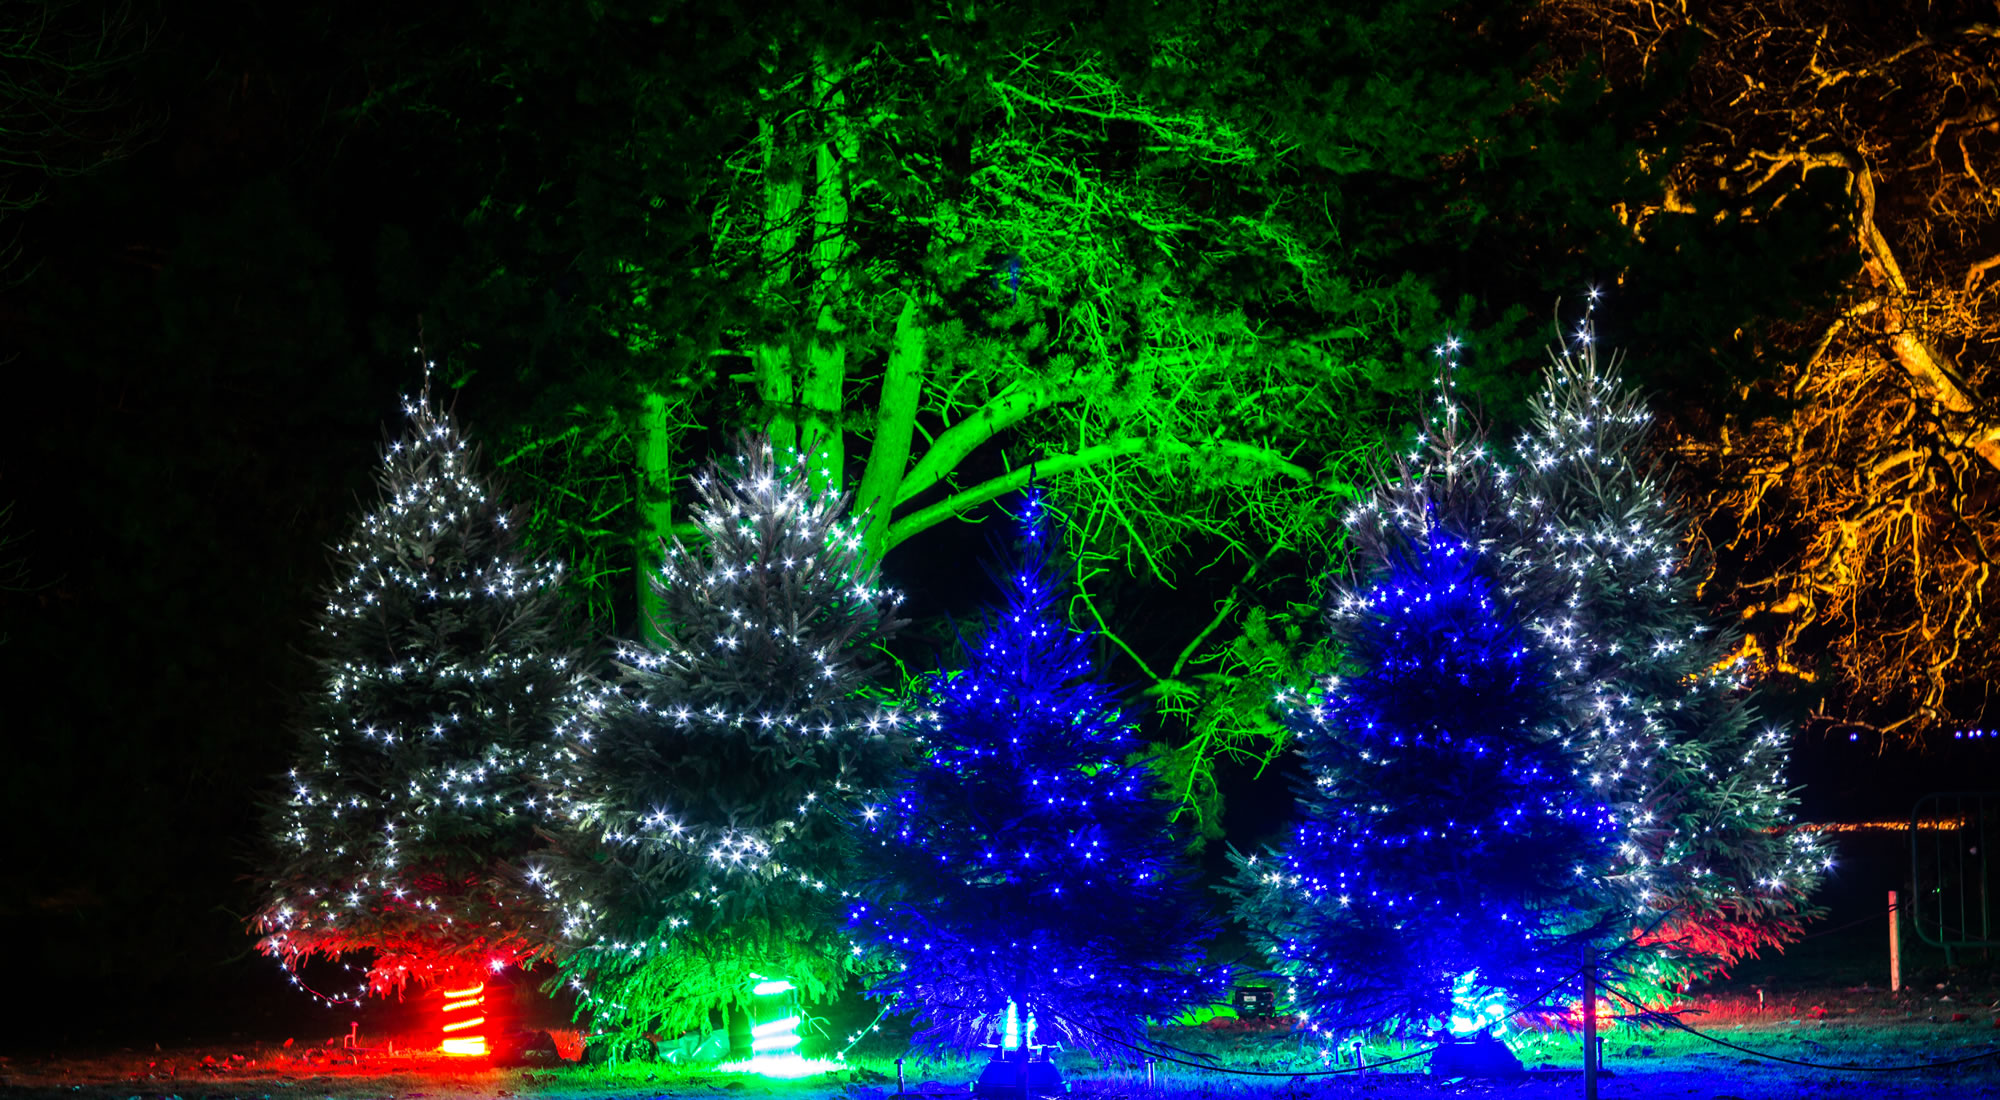 Experience the Magic of Christmas at Kew Gardens